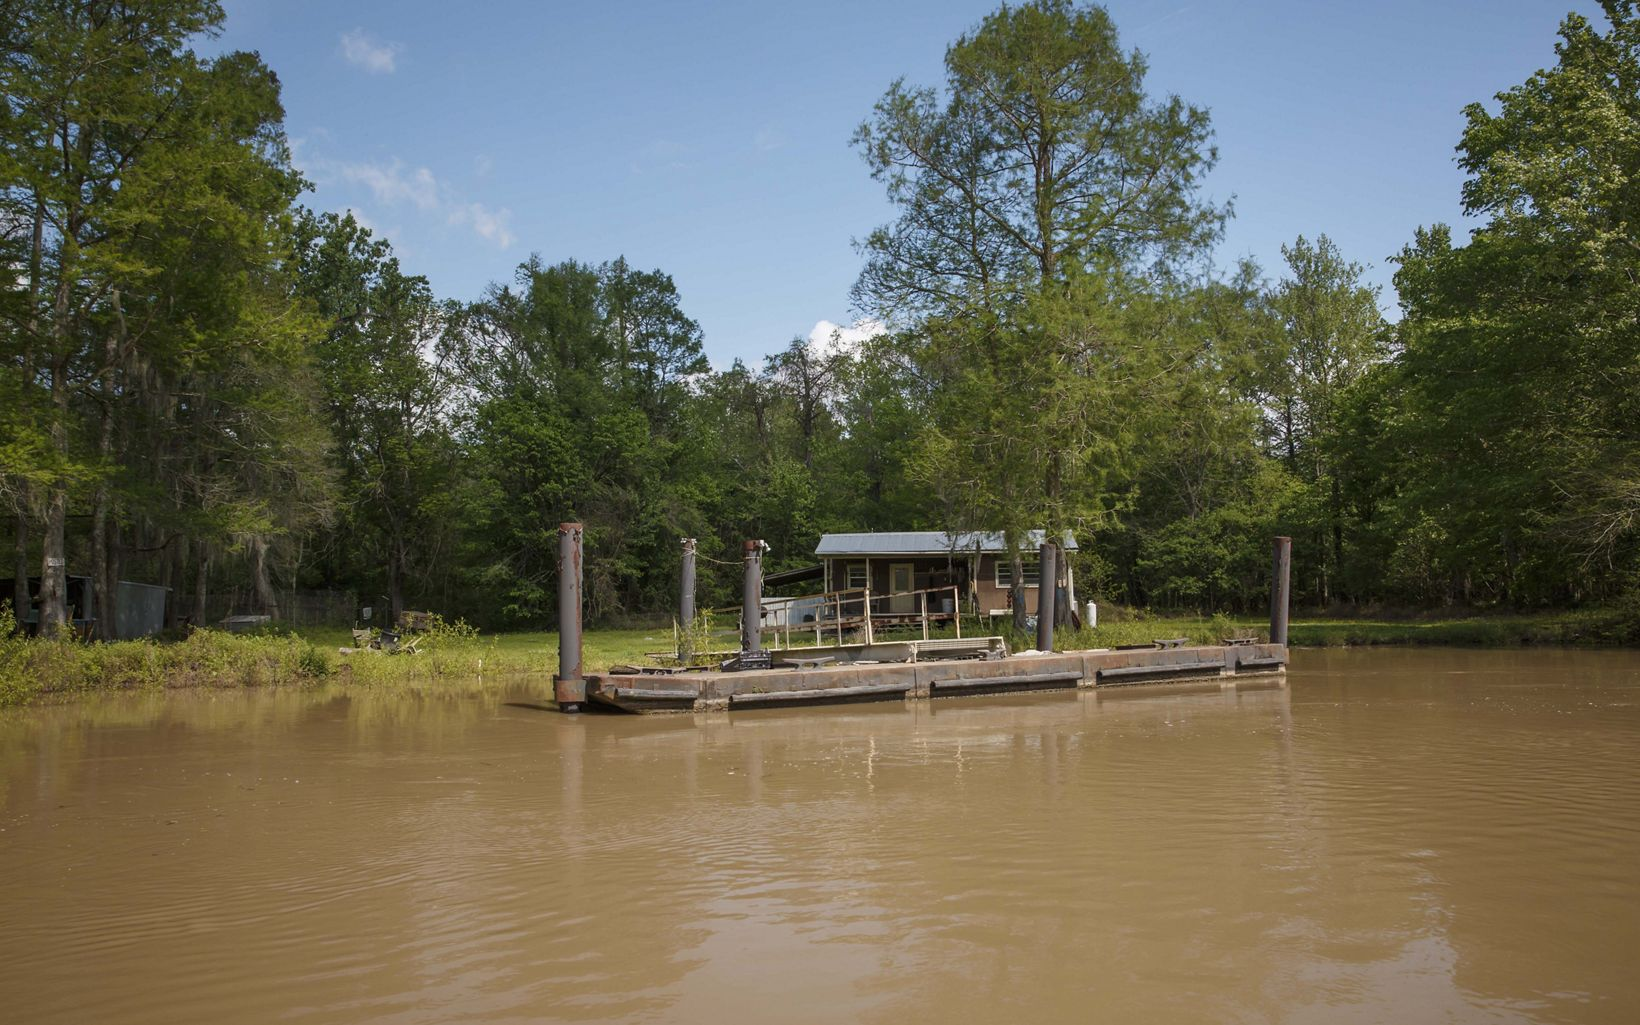 Dock in the Atchafalaya